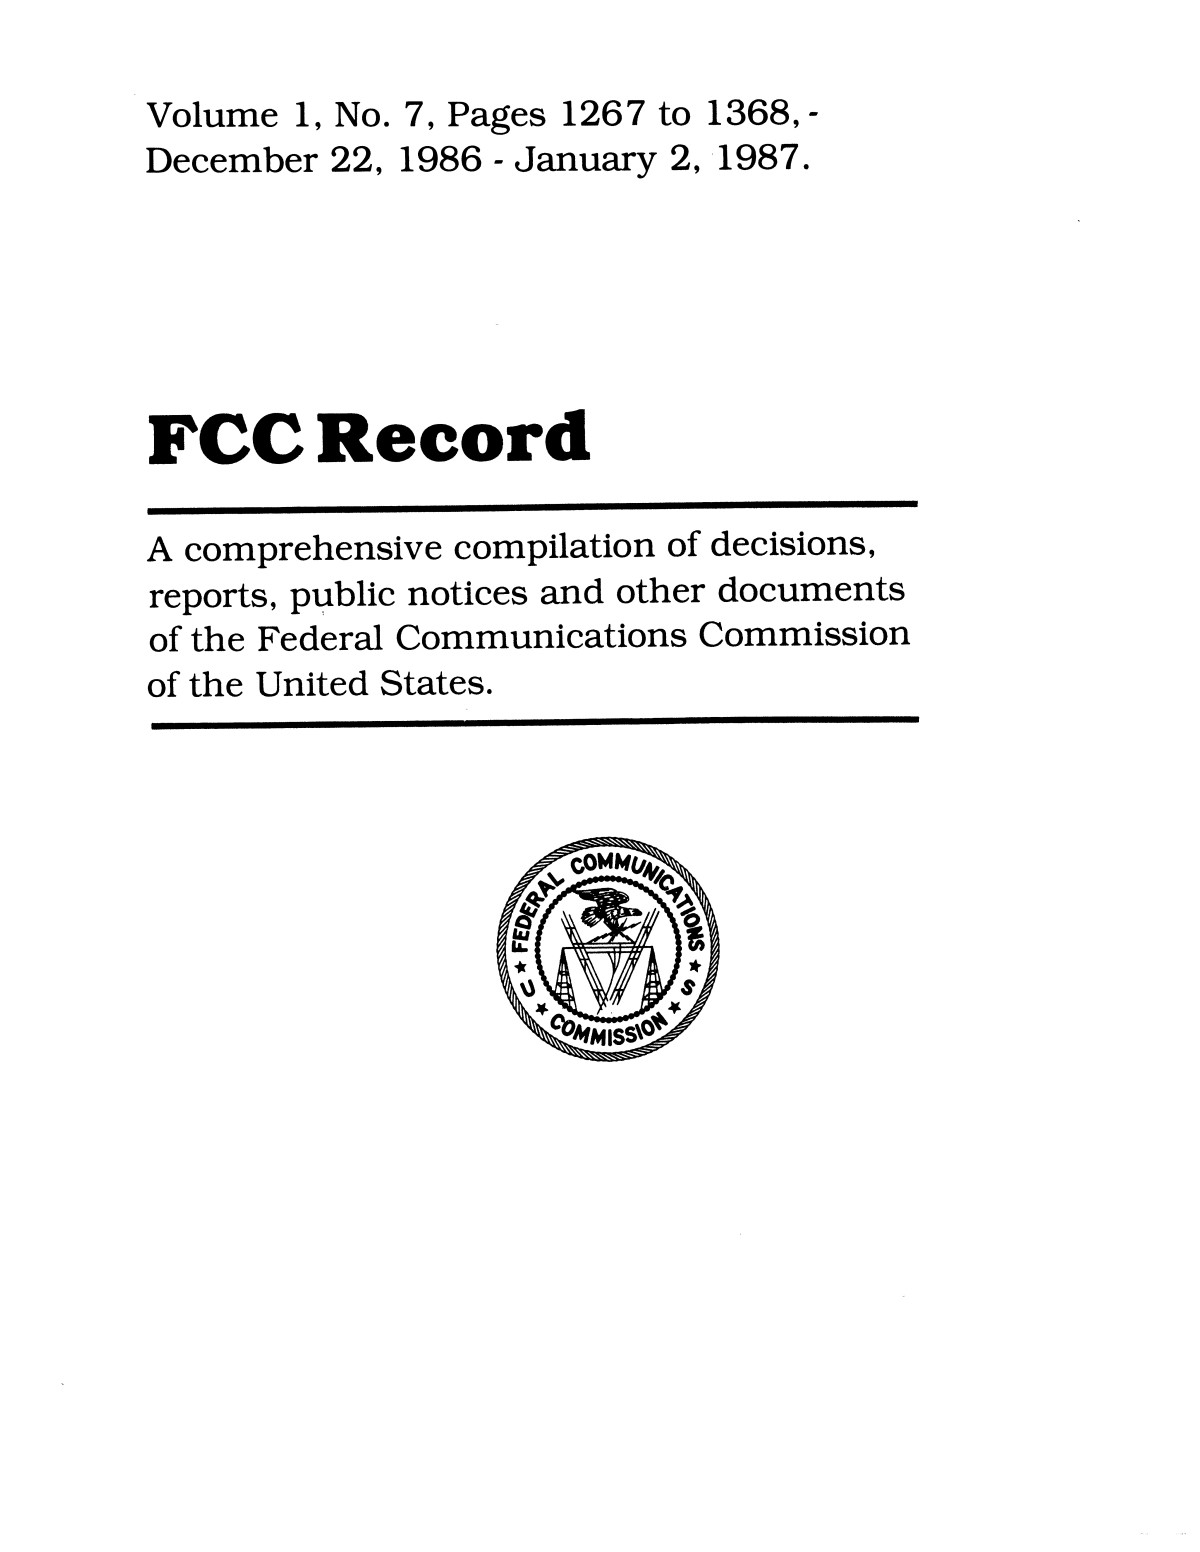 FCC Record, Volume 1, No. 7, Pages 1267 to 1368, December 22, 1986 - January 2, 1987                                                                                                      Front Cover